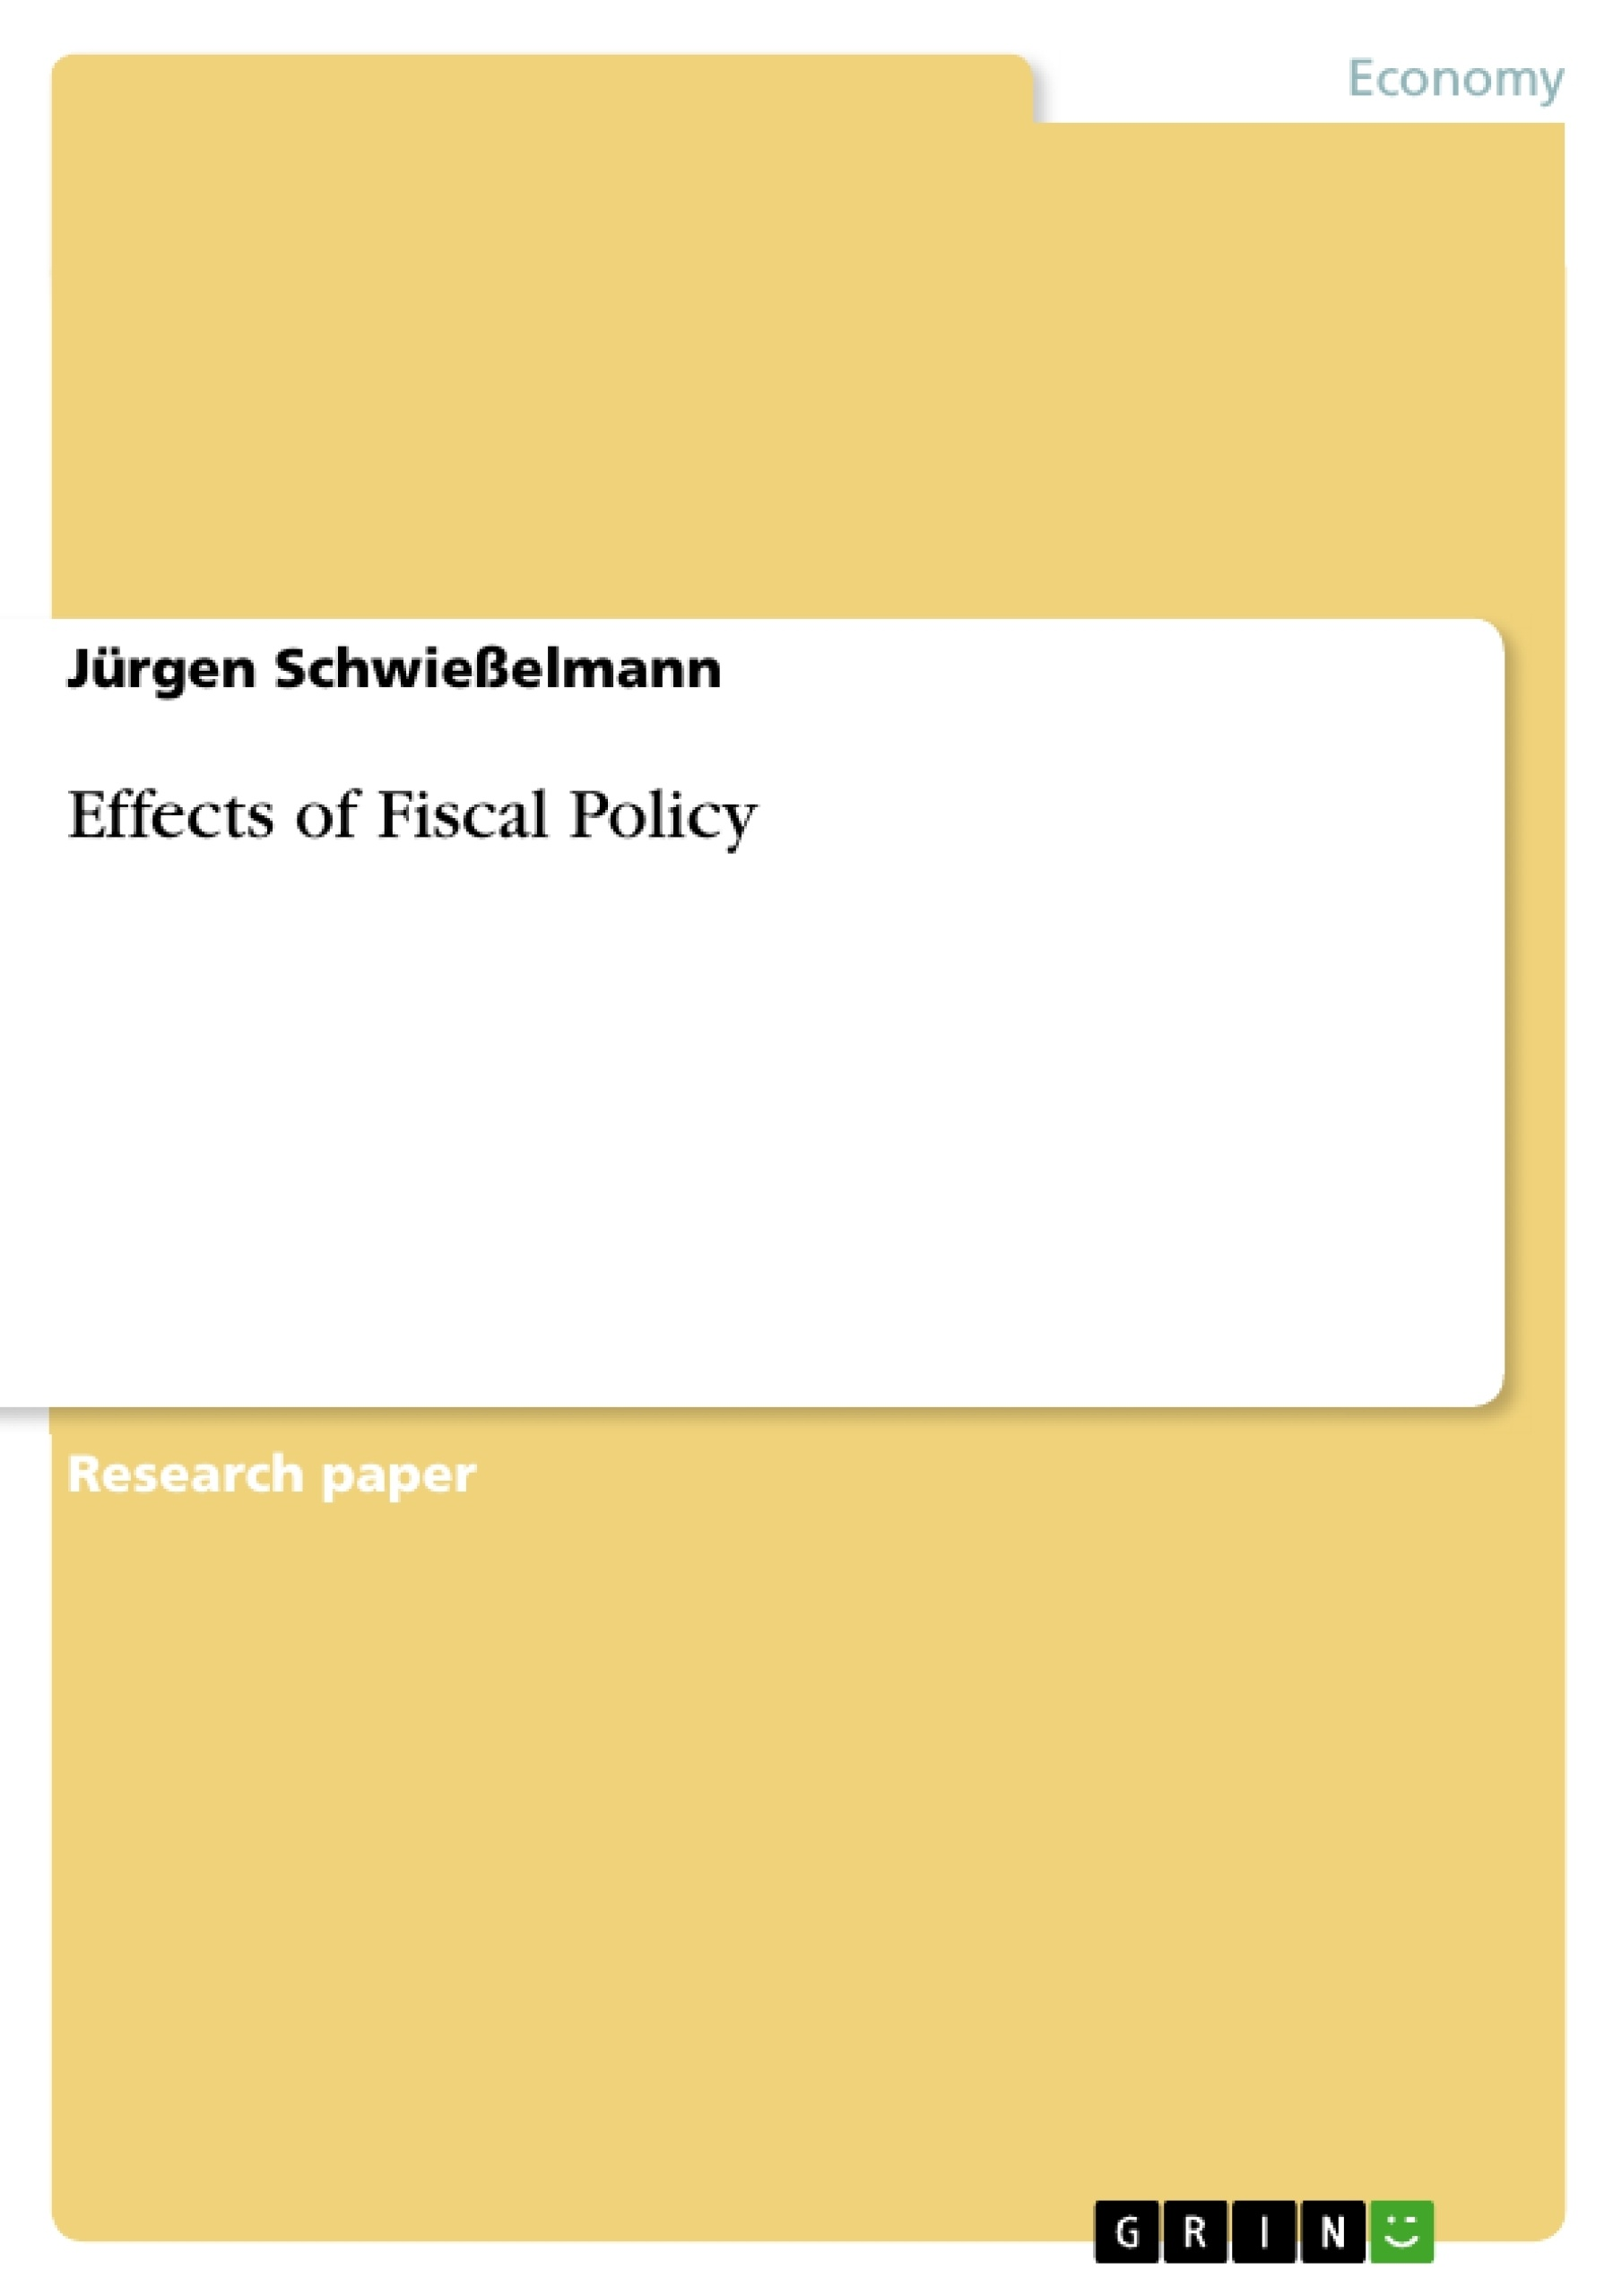 Title: Effects of Fiscal Policy